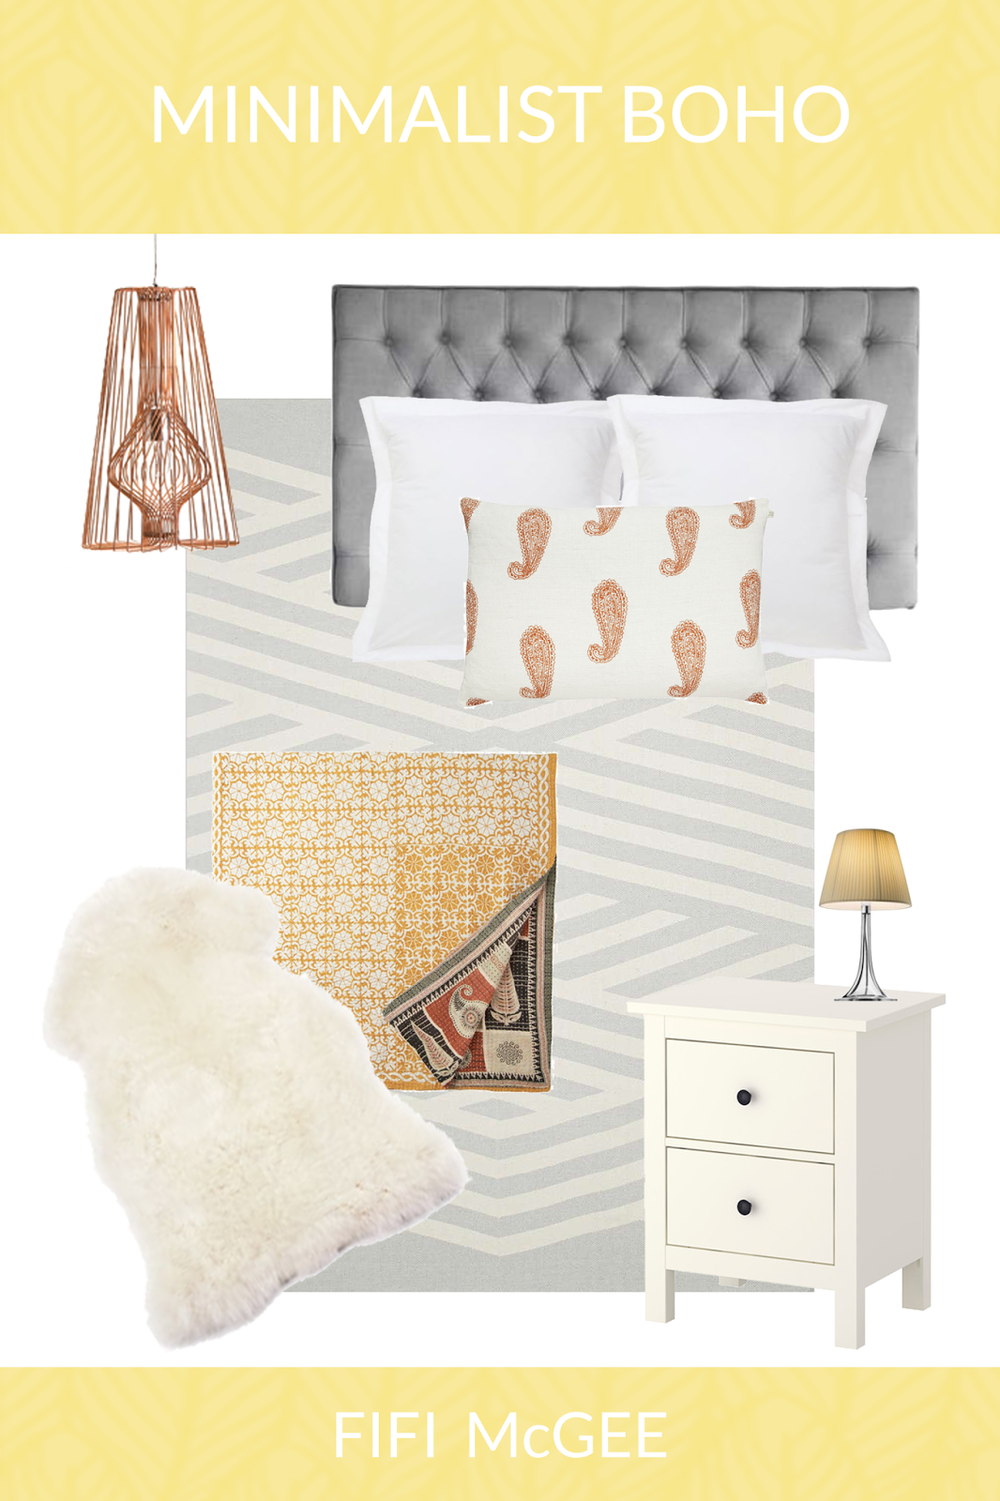 My Minimalist Boho Bedroom Mood Board John Lewis GBP50 Giveaway